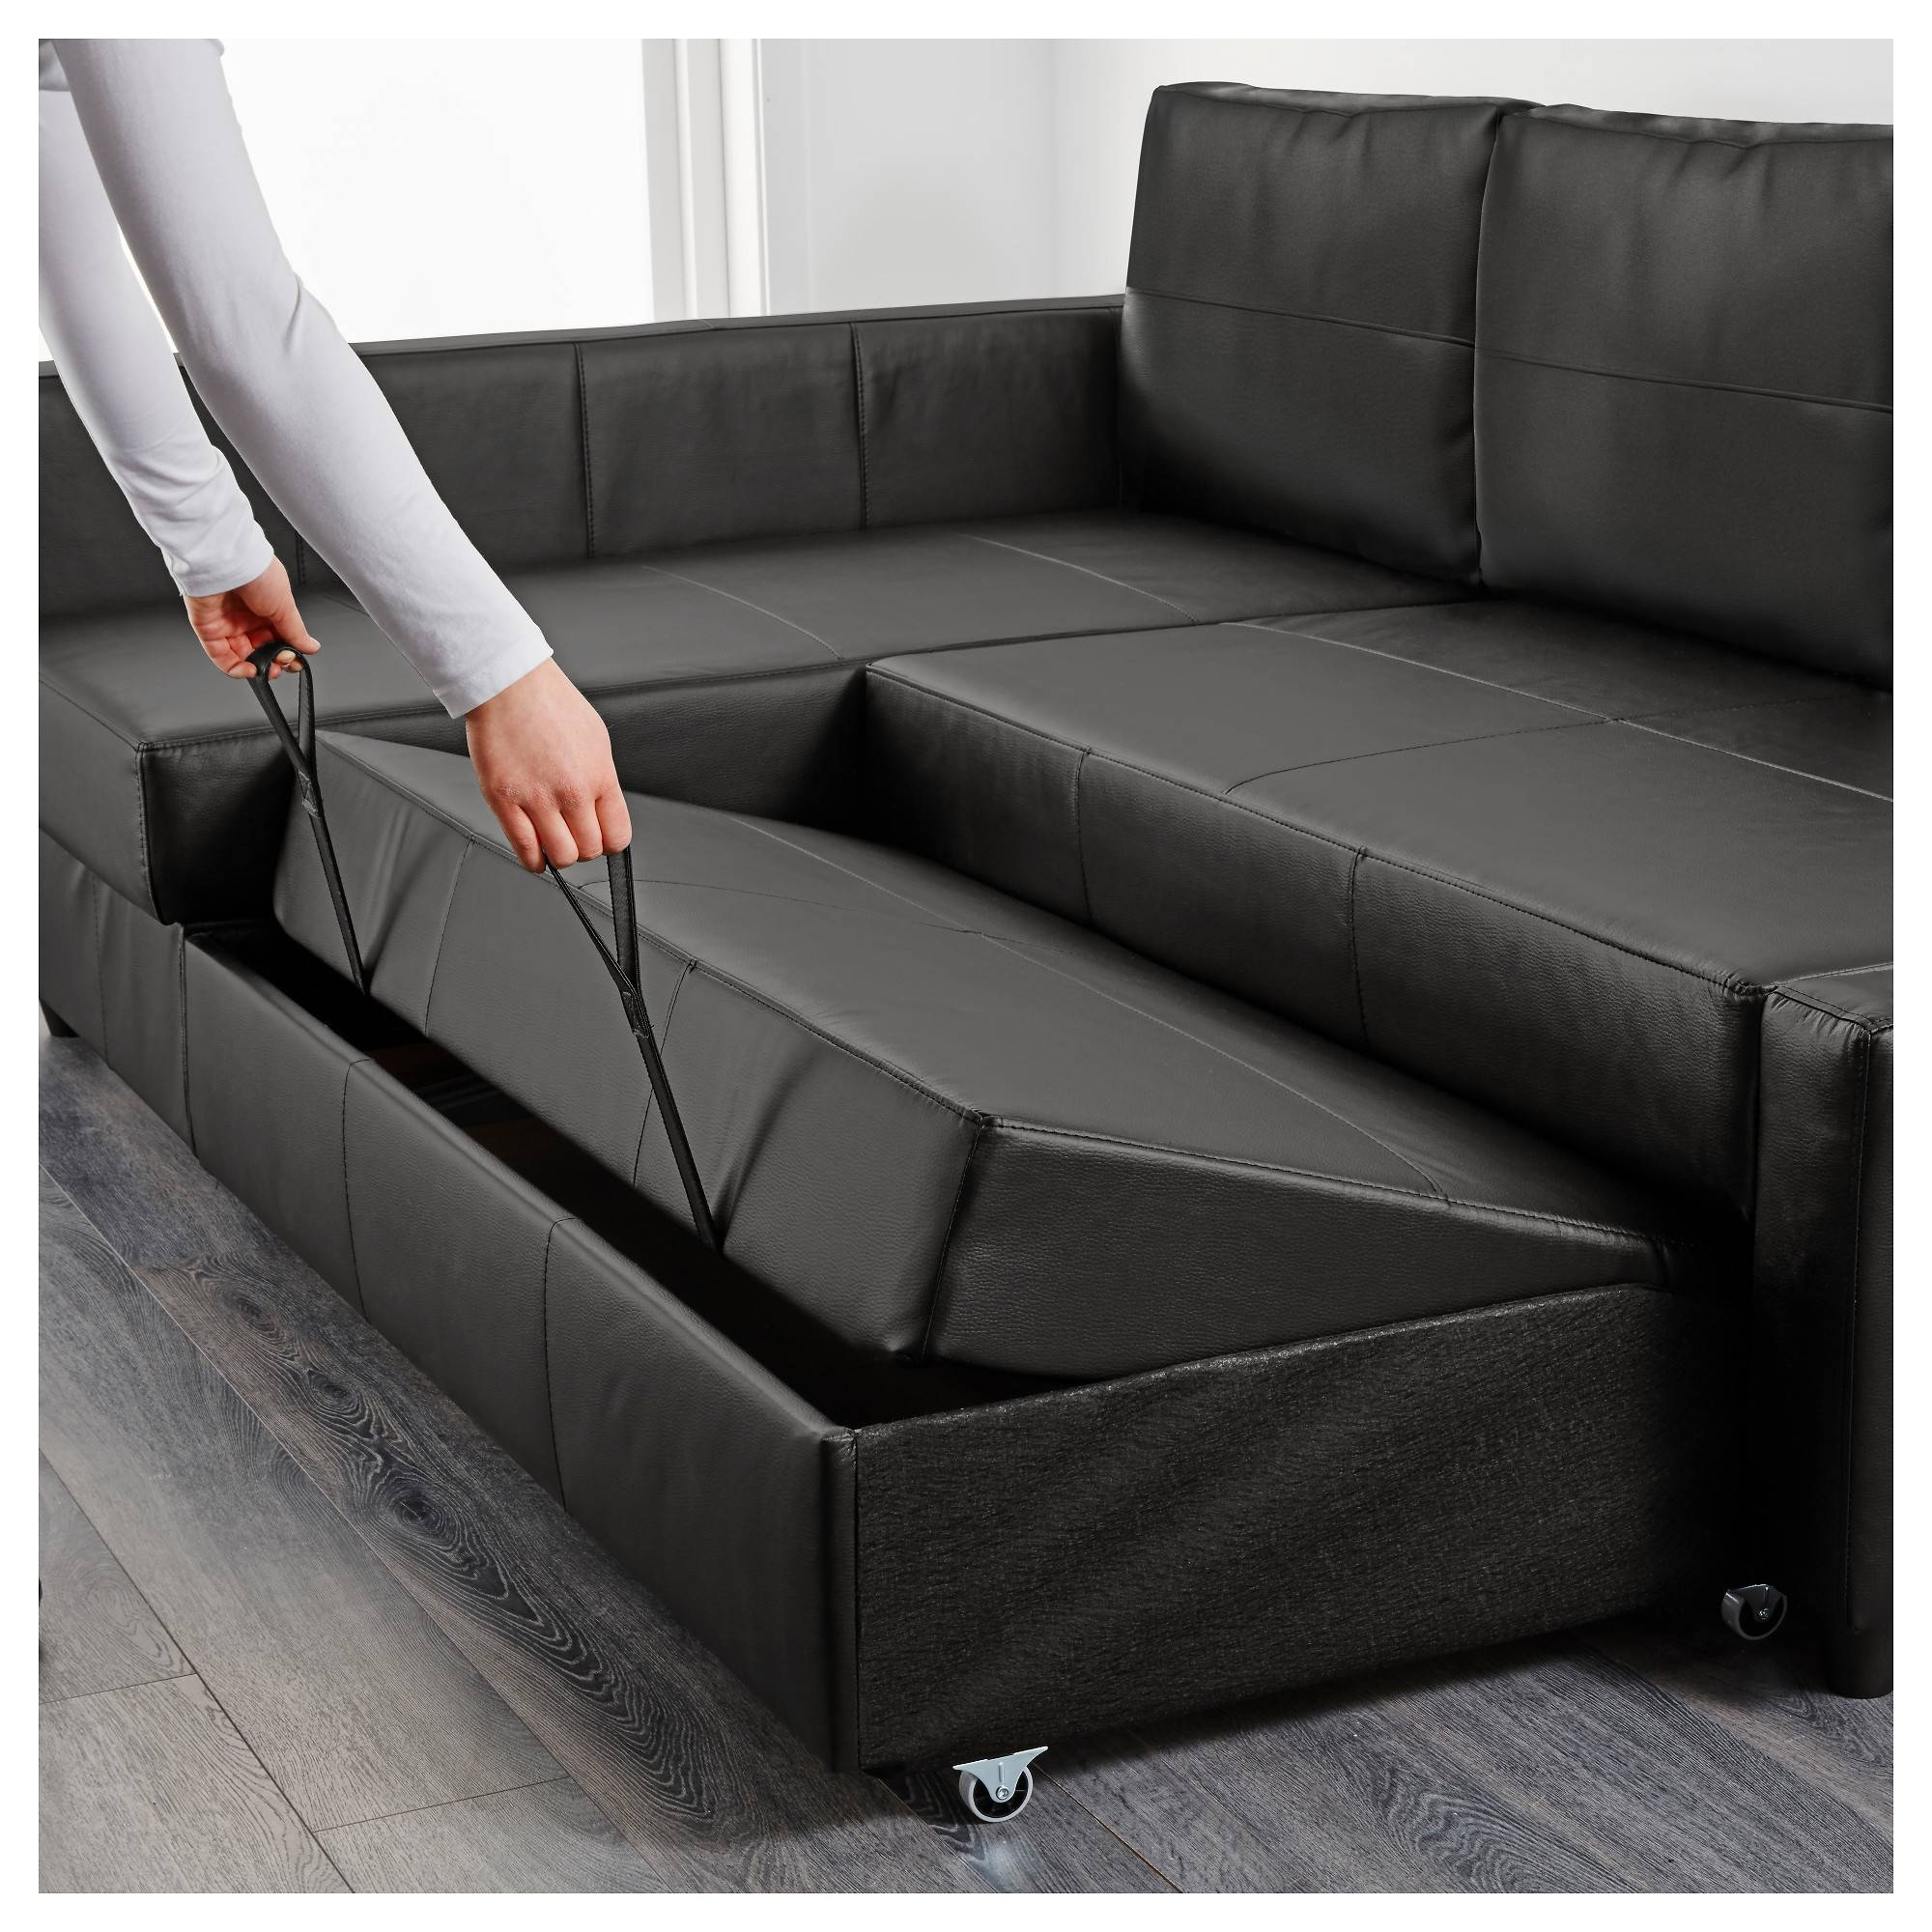 Friheten Sleeper Sectional,3 Seat W/storage - Skiftebo Dark Gray within Leather Sofa Beds With Storage (Image 11 of 30)